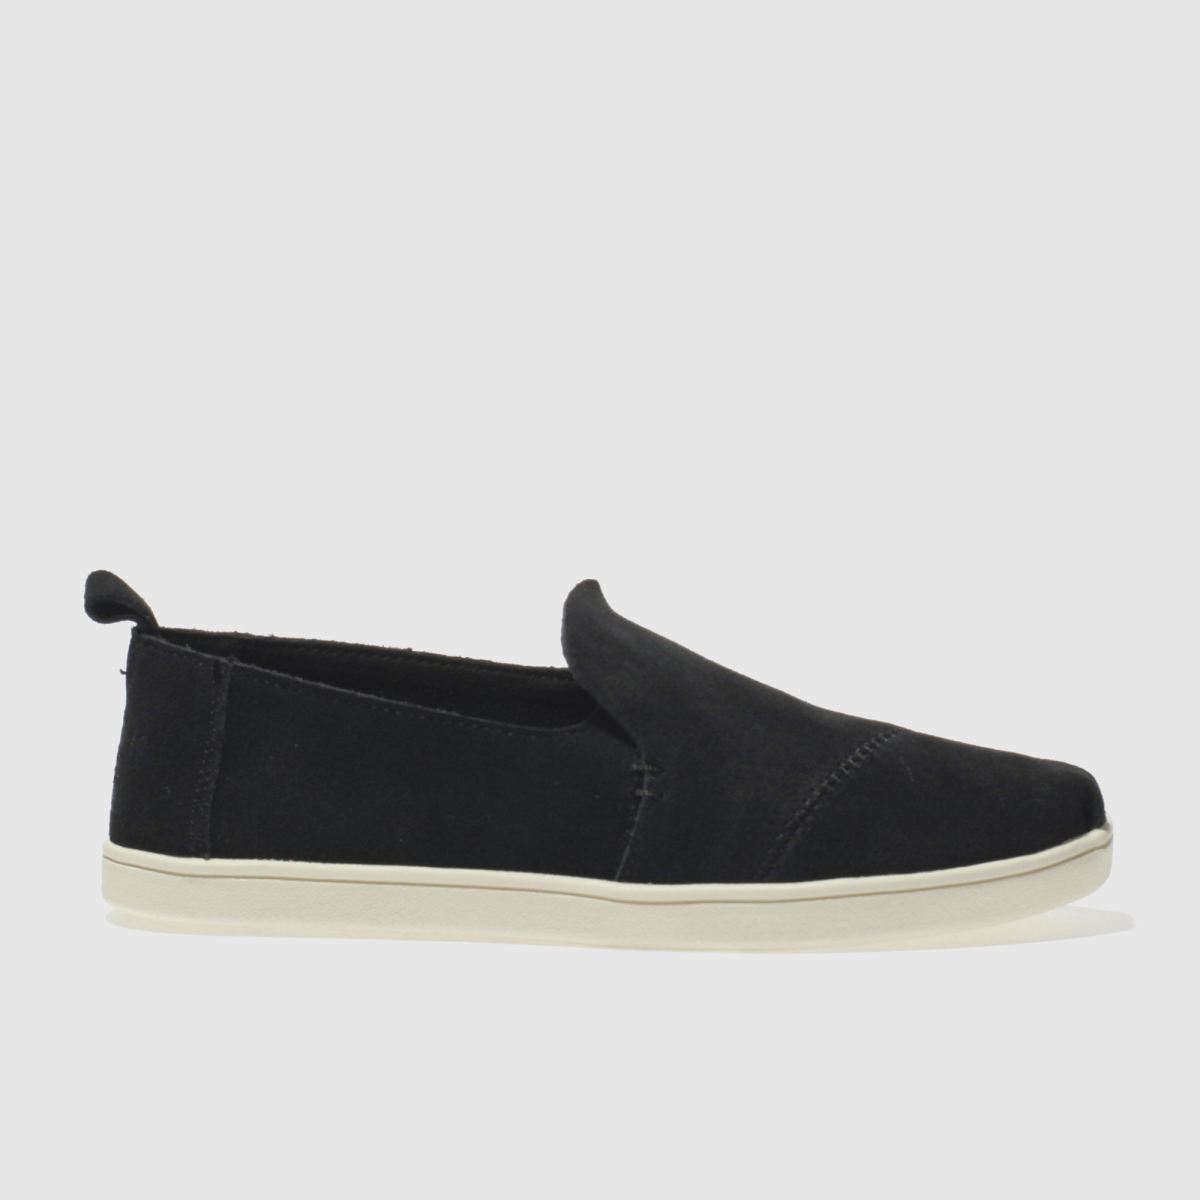 toms black & white deconstructed alpargata flat shoes